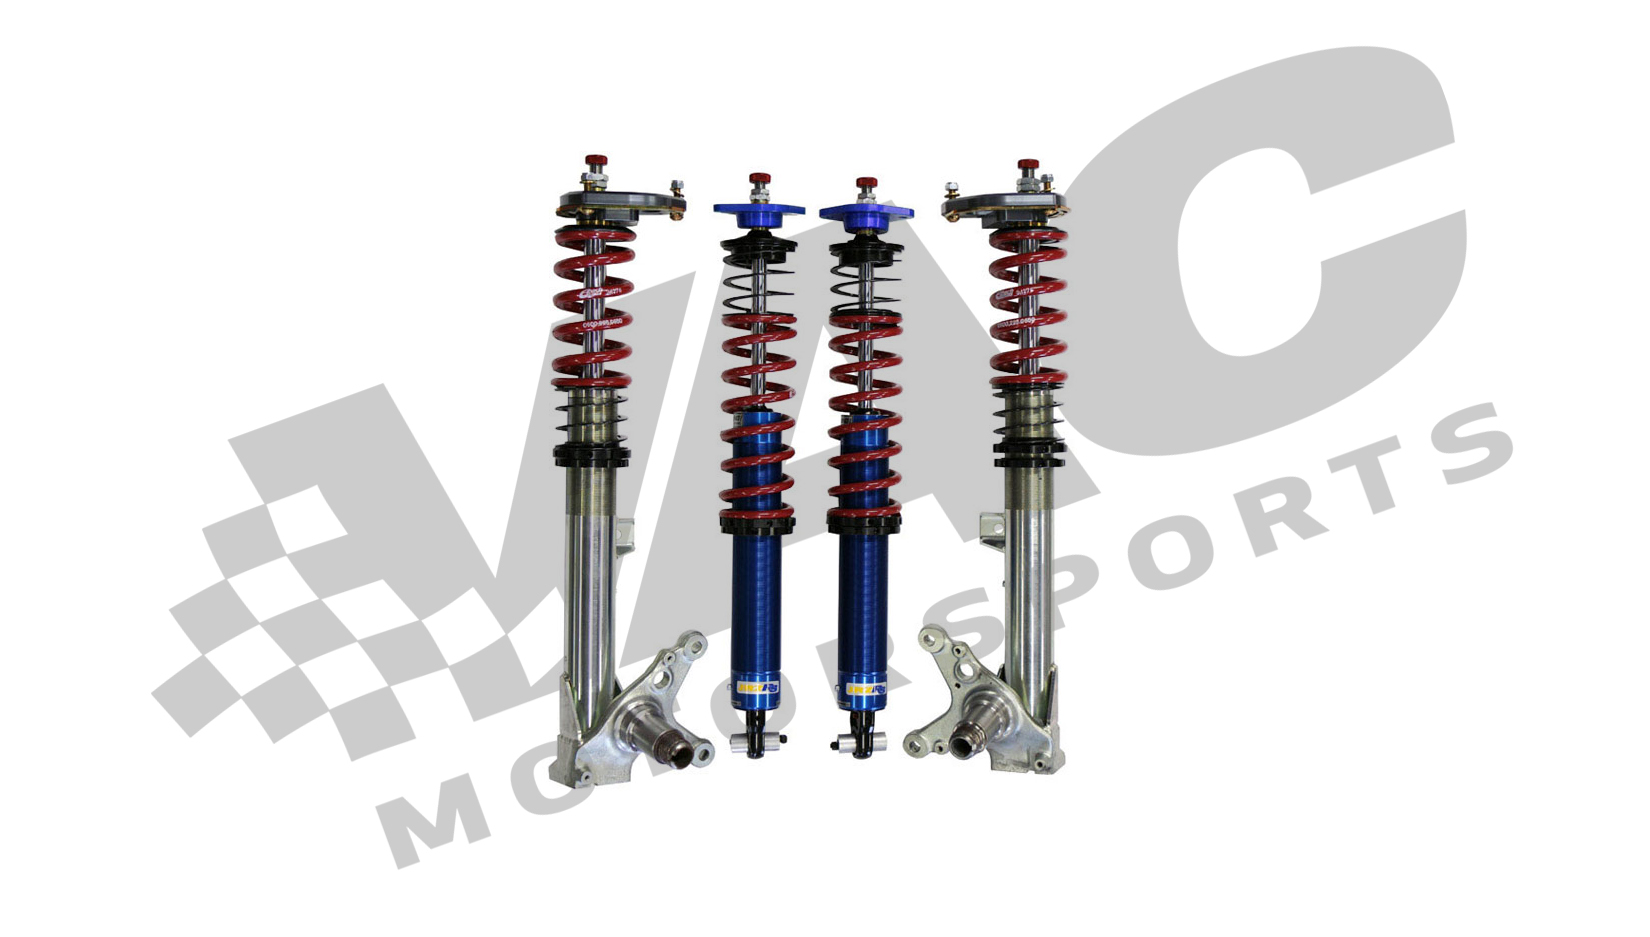 JRZ - E30 & E30 M3 RS Series Coilover Suspension Kits THUMBNAIL